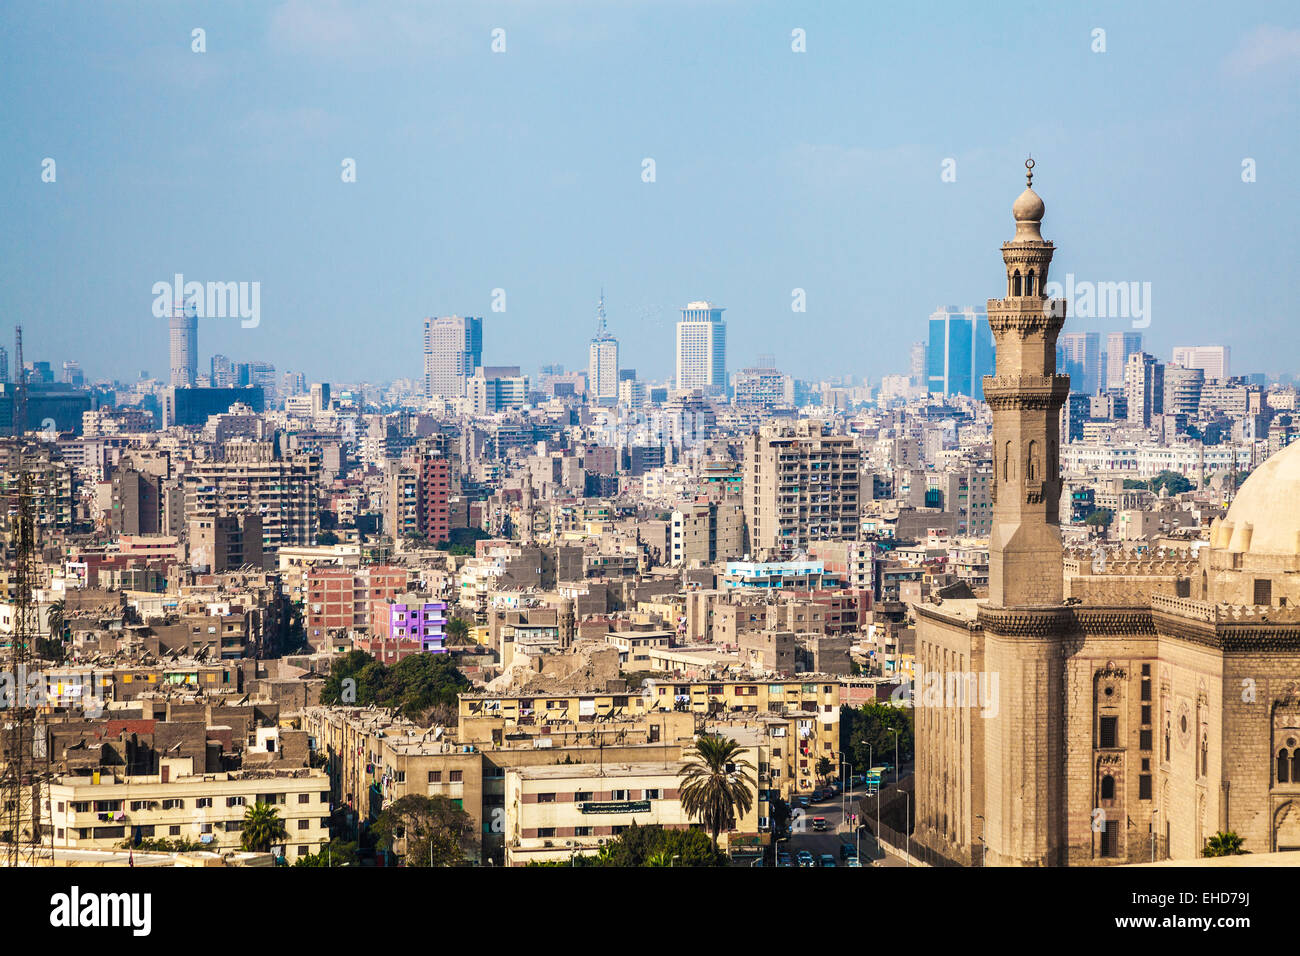 View over Cairo from the Citadel. - Stock Image